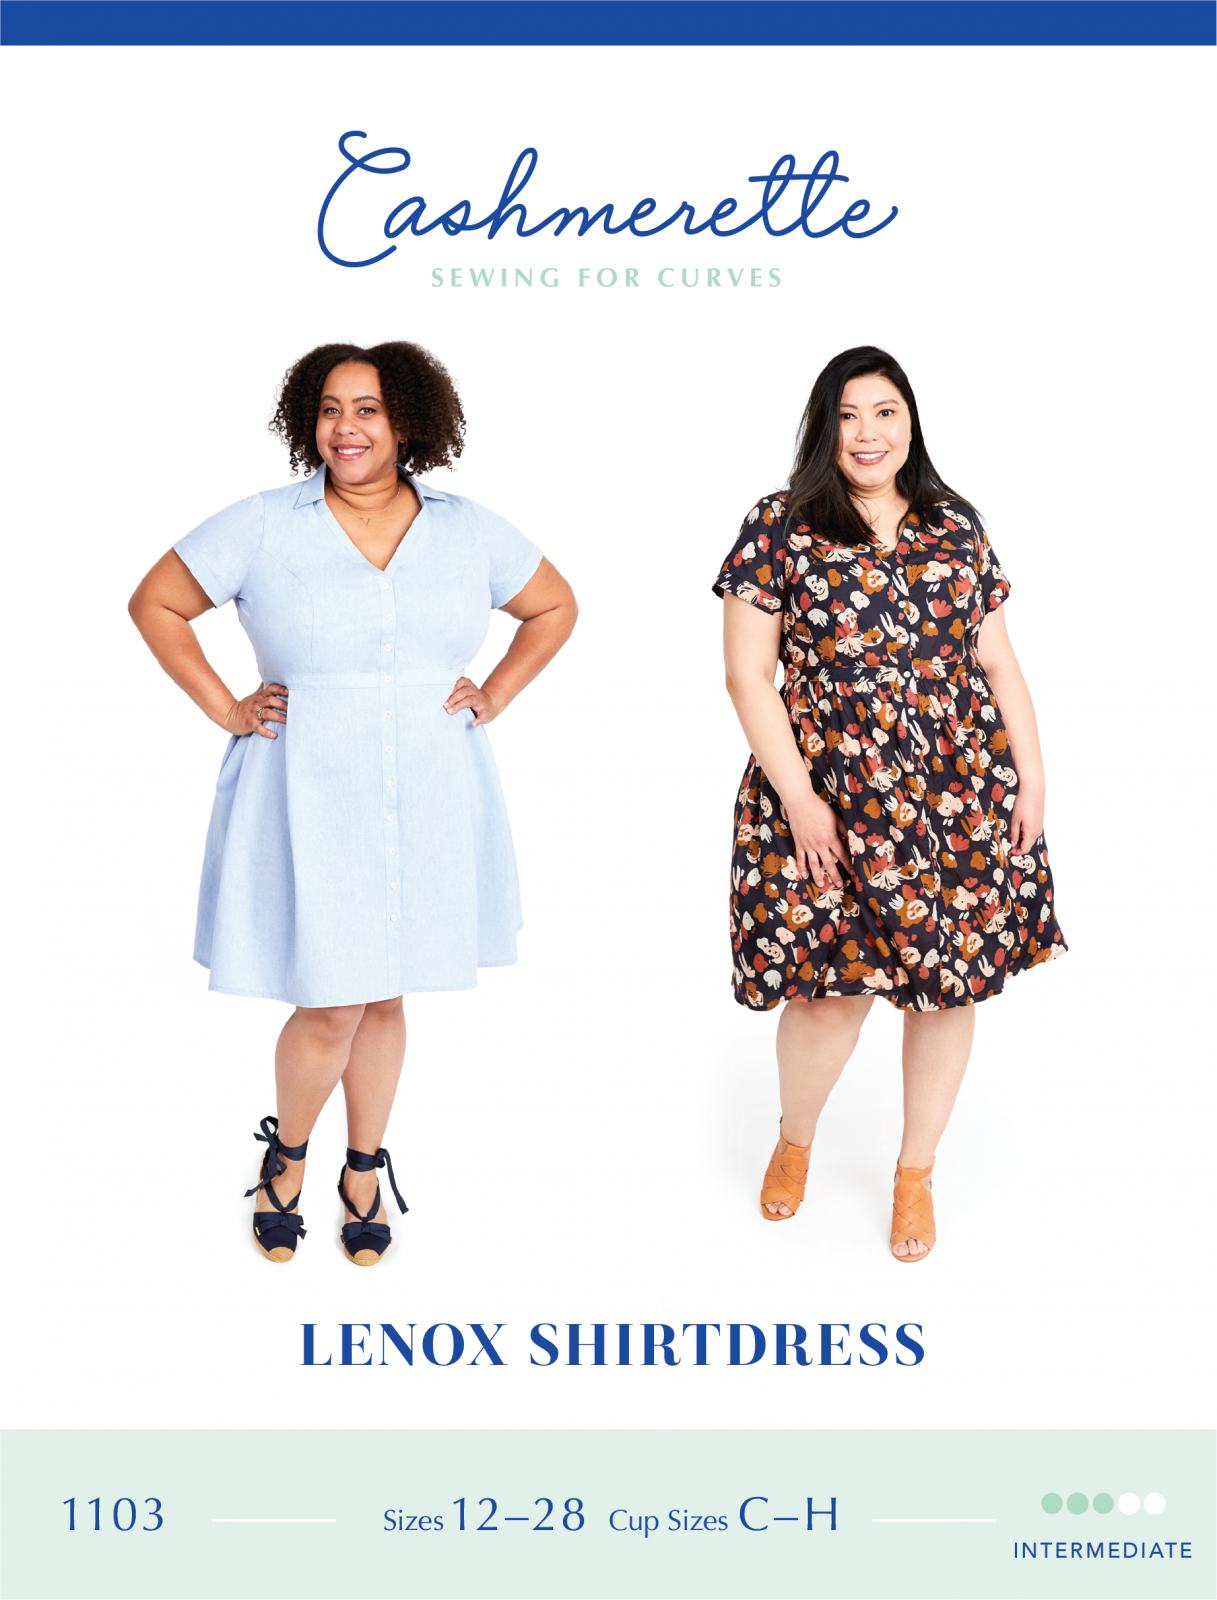 Lenox Dress - Cashmerette